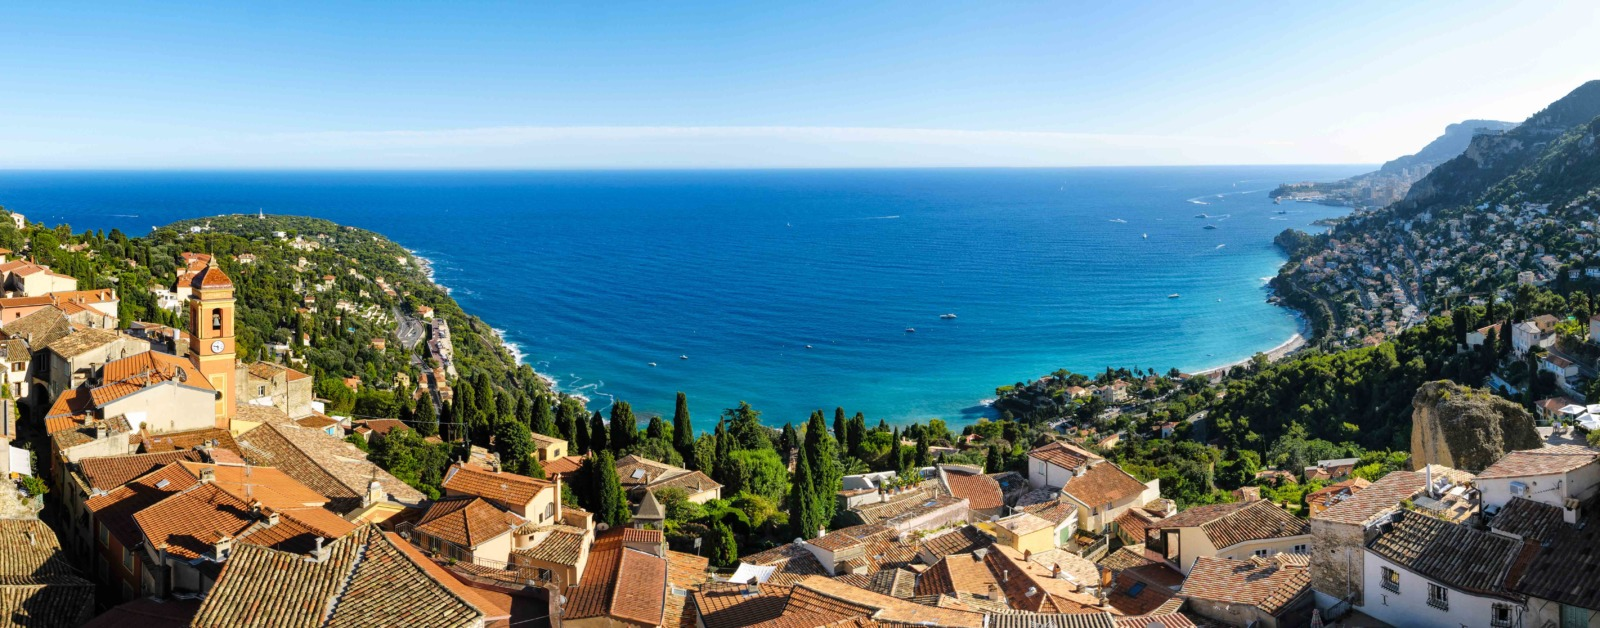 Rocquebrune-Cap-Martin © XtoF - licence [CC BY-SA 4.0] from Wikimedia Commons